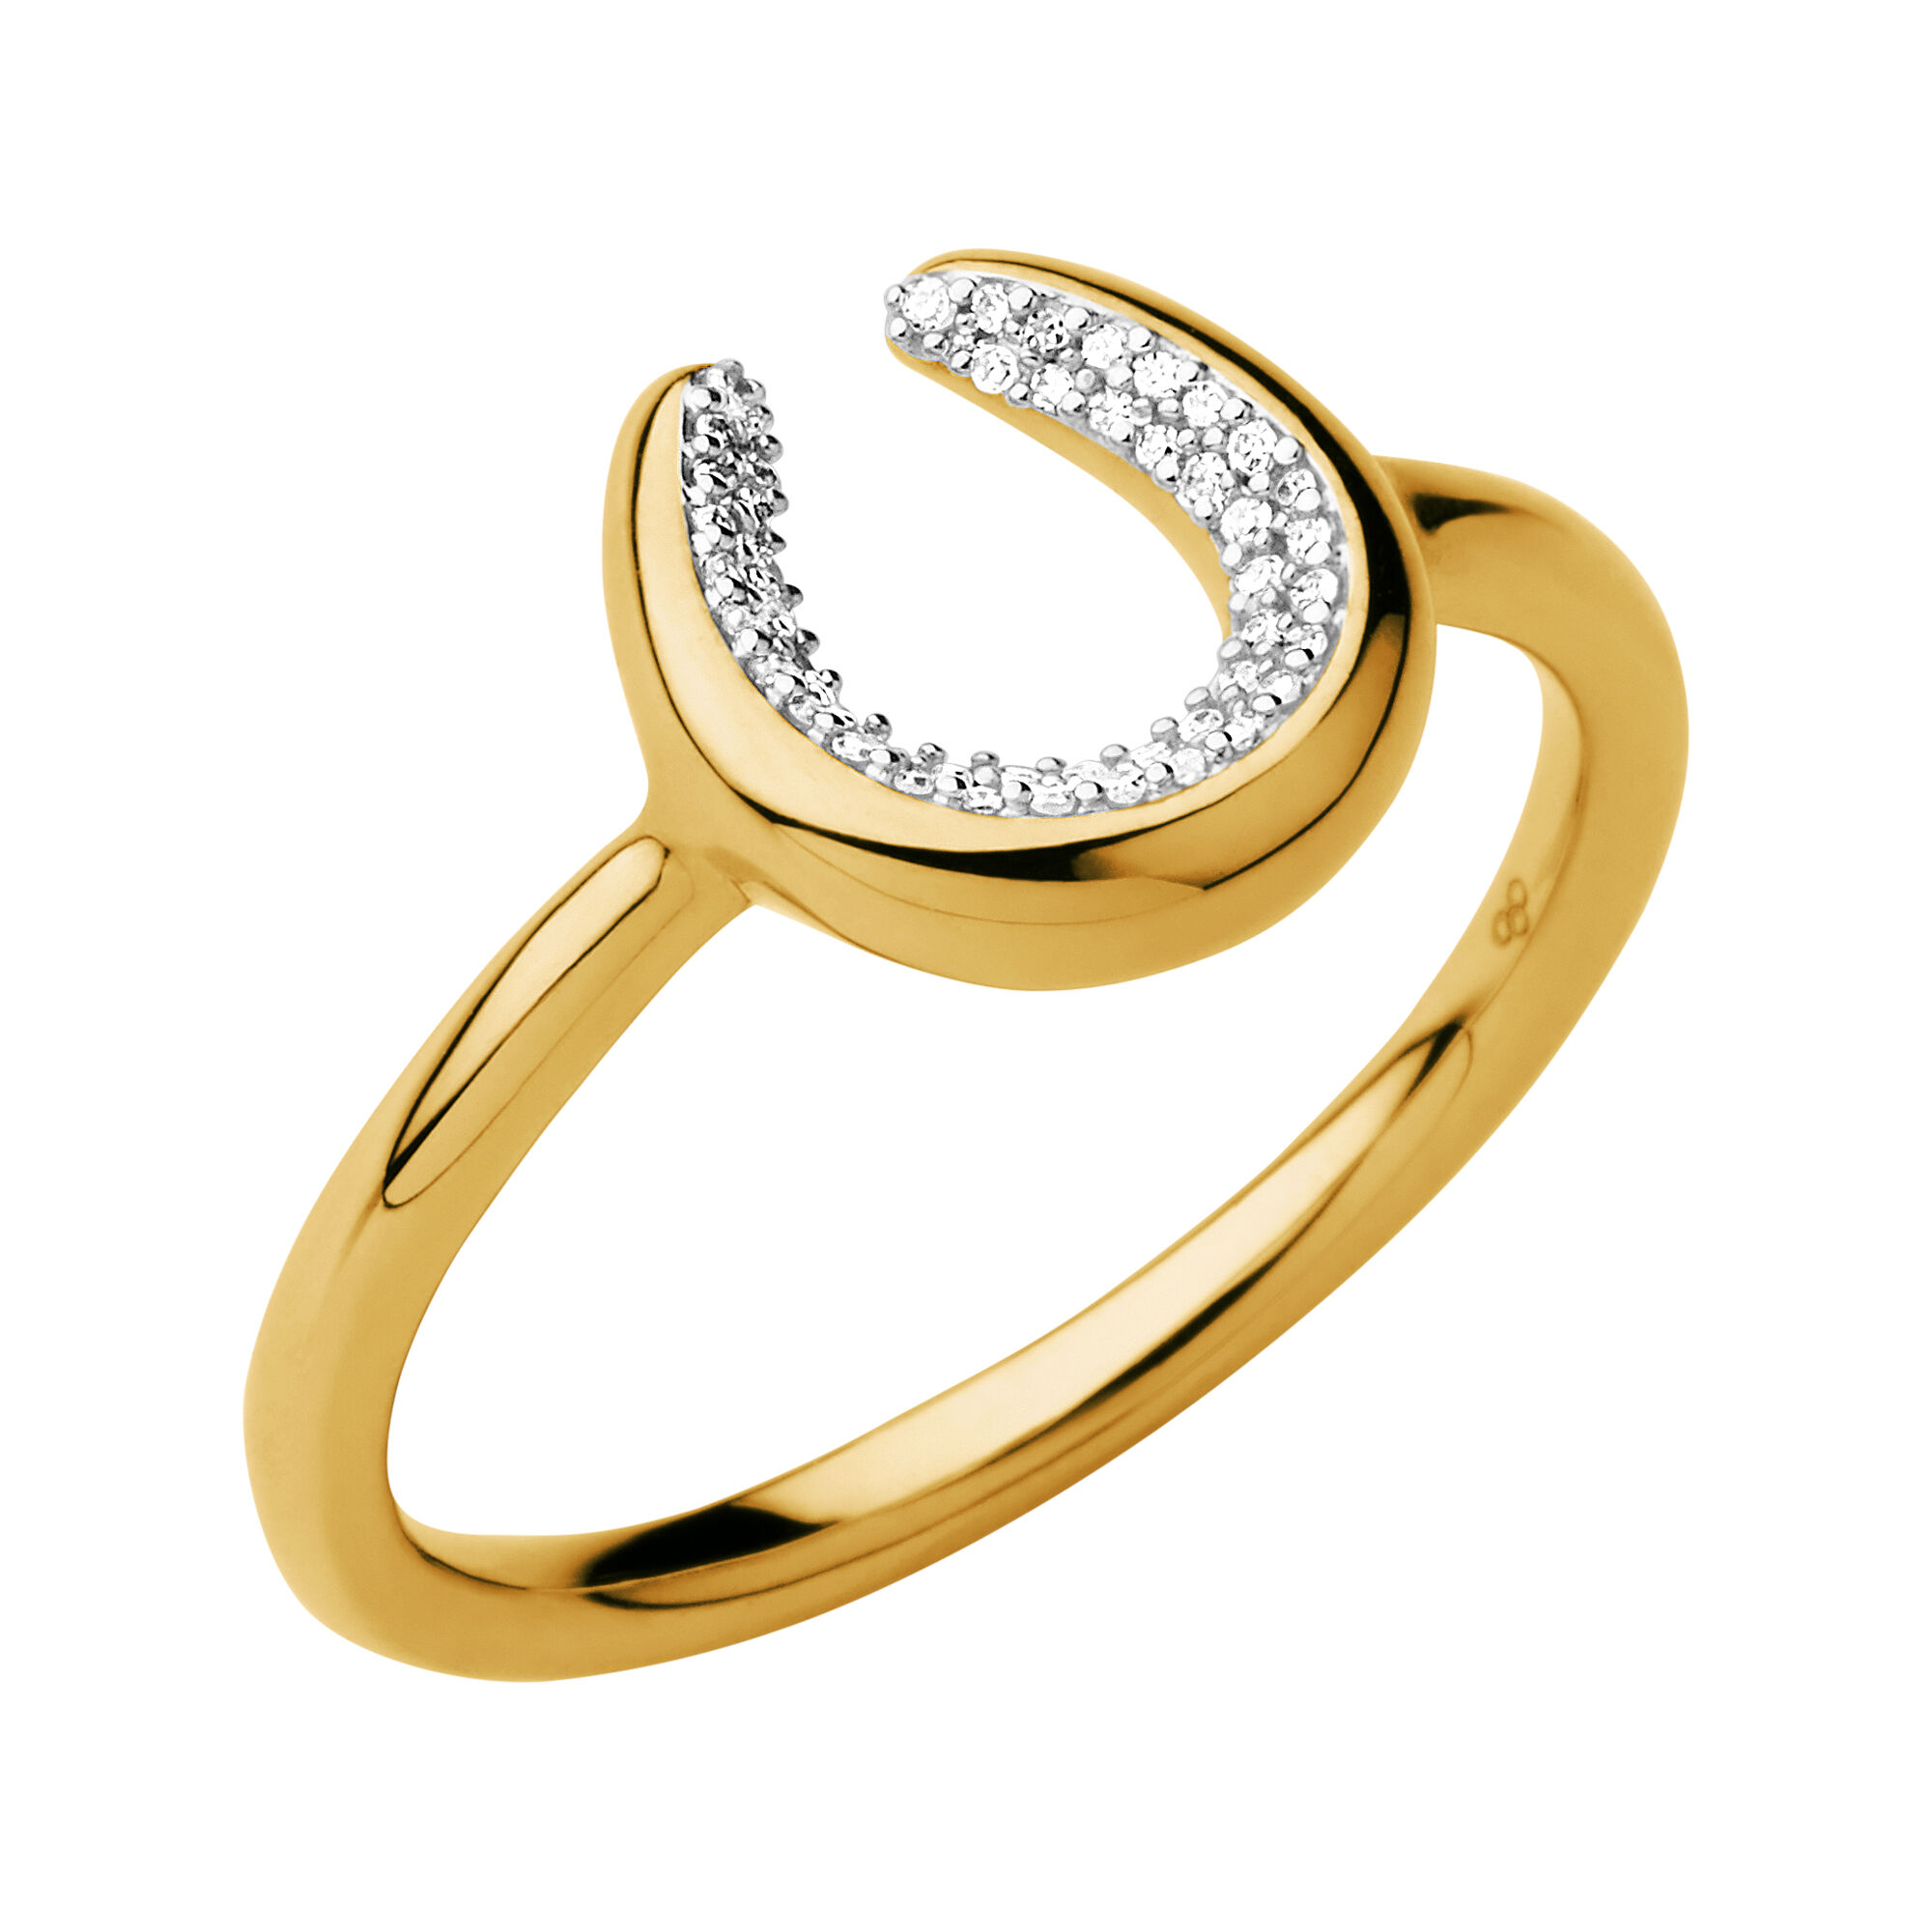 gauche ring et rive img product moi diamond french belle poque graduation rings jewelry toi epoque